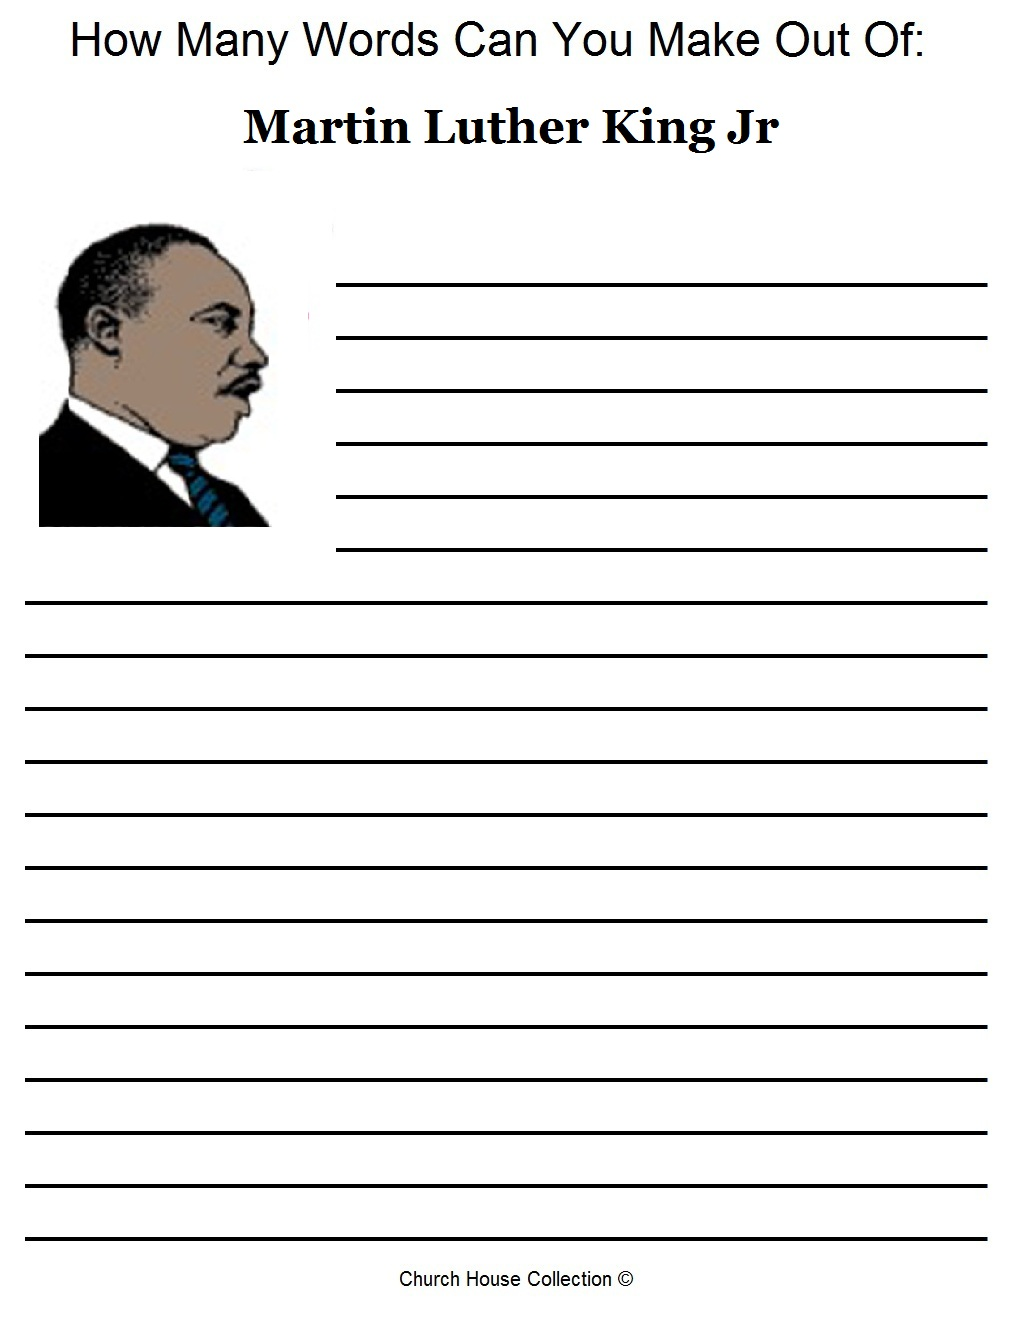 Free Martin Luther King Jr Worksheets How Many Words Can You Make Out Of Printable Version